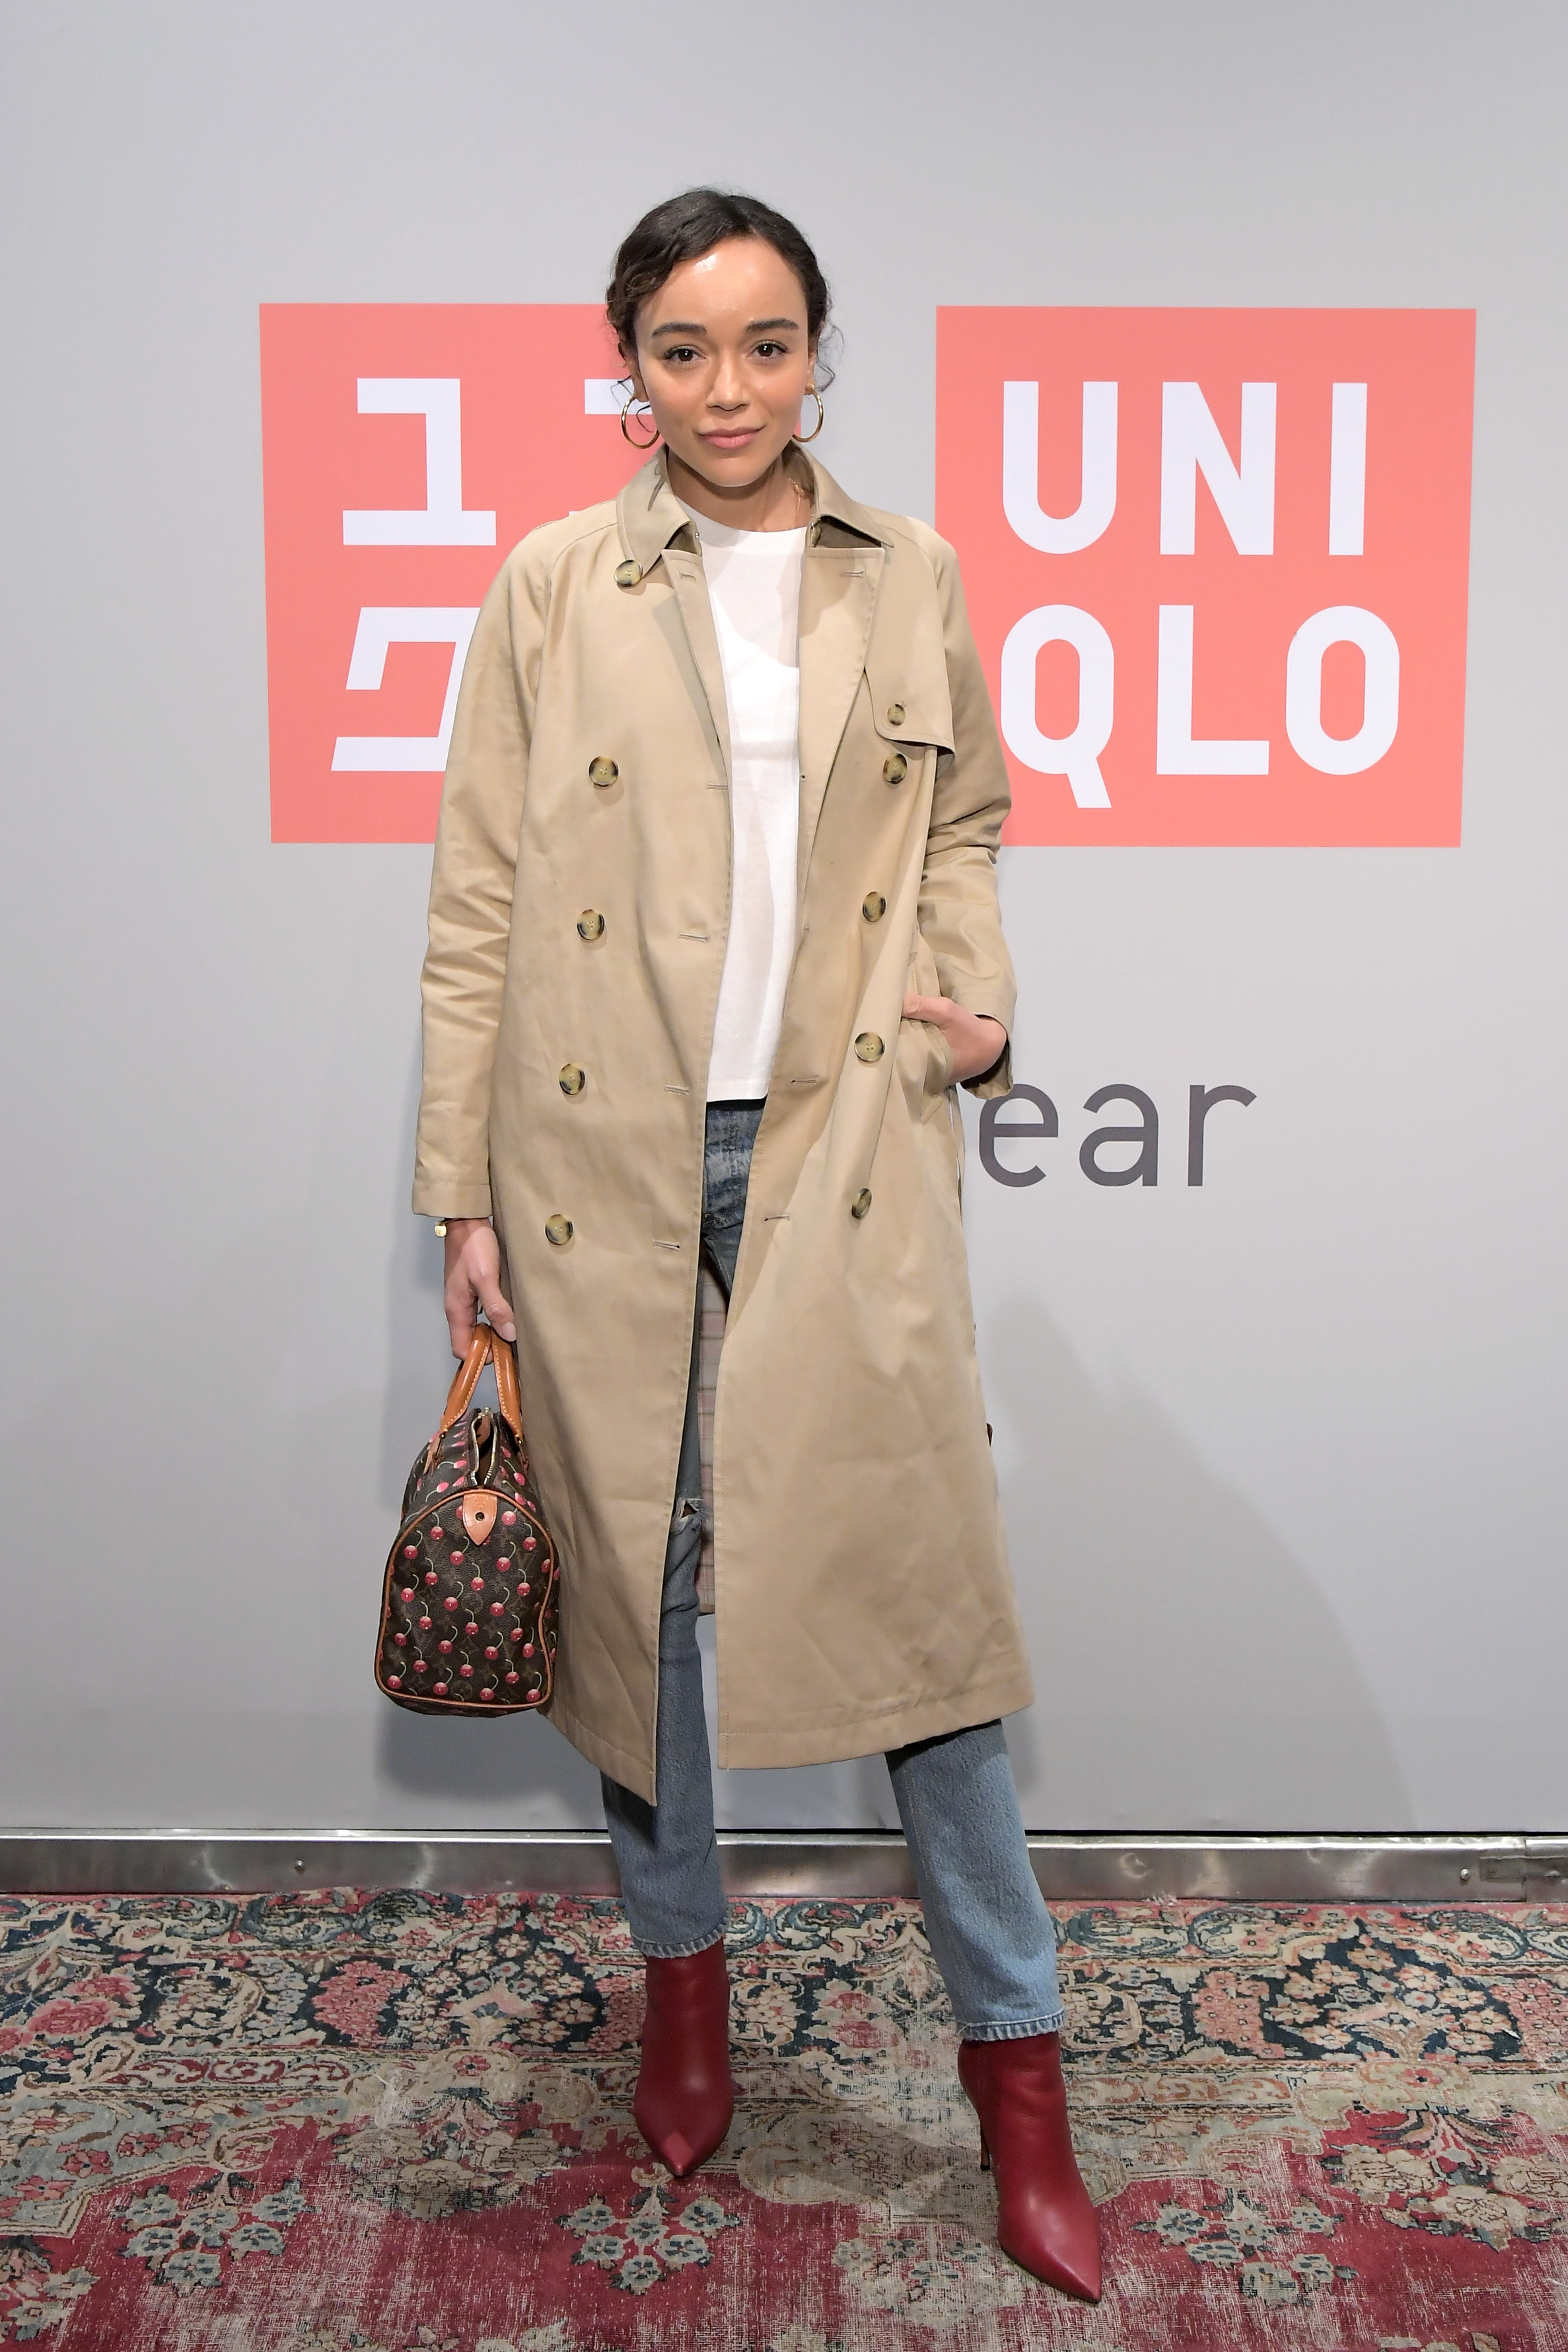 LOS ANGELES, CA - MARCH 07: Ashley Madekwe attends the UNIQLO 2019 Collections Celebration at Smogshoppe on March 7, 2019 in Los Angeles, California. (Photo by Charley Gallay/Getty Images for UNIQLO)